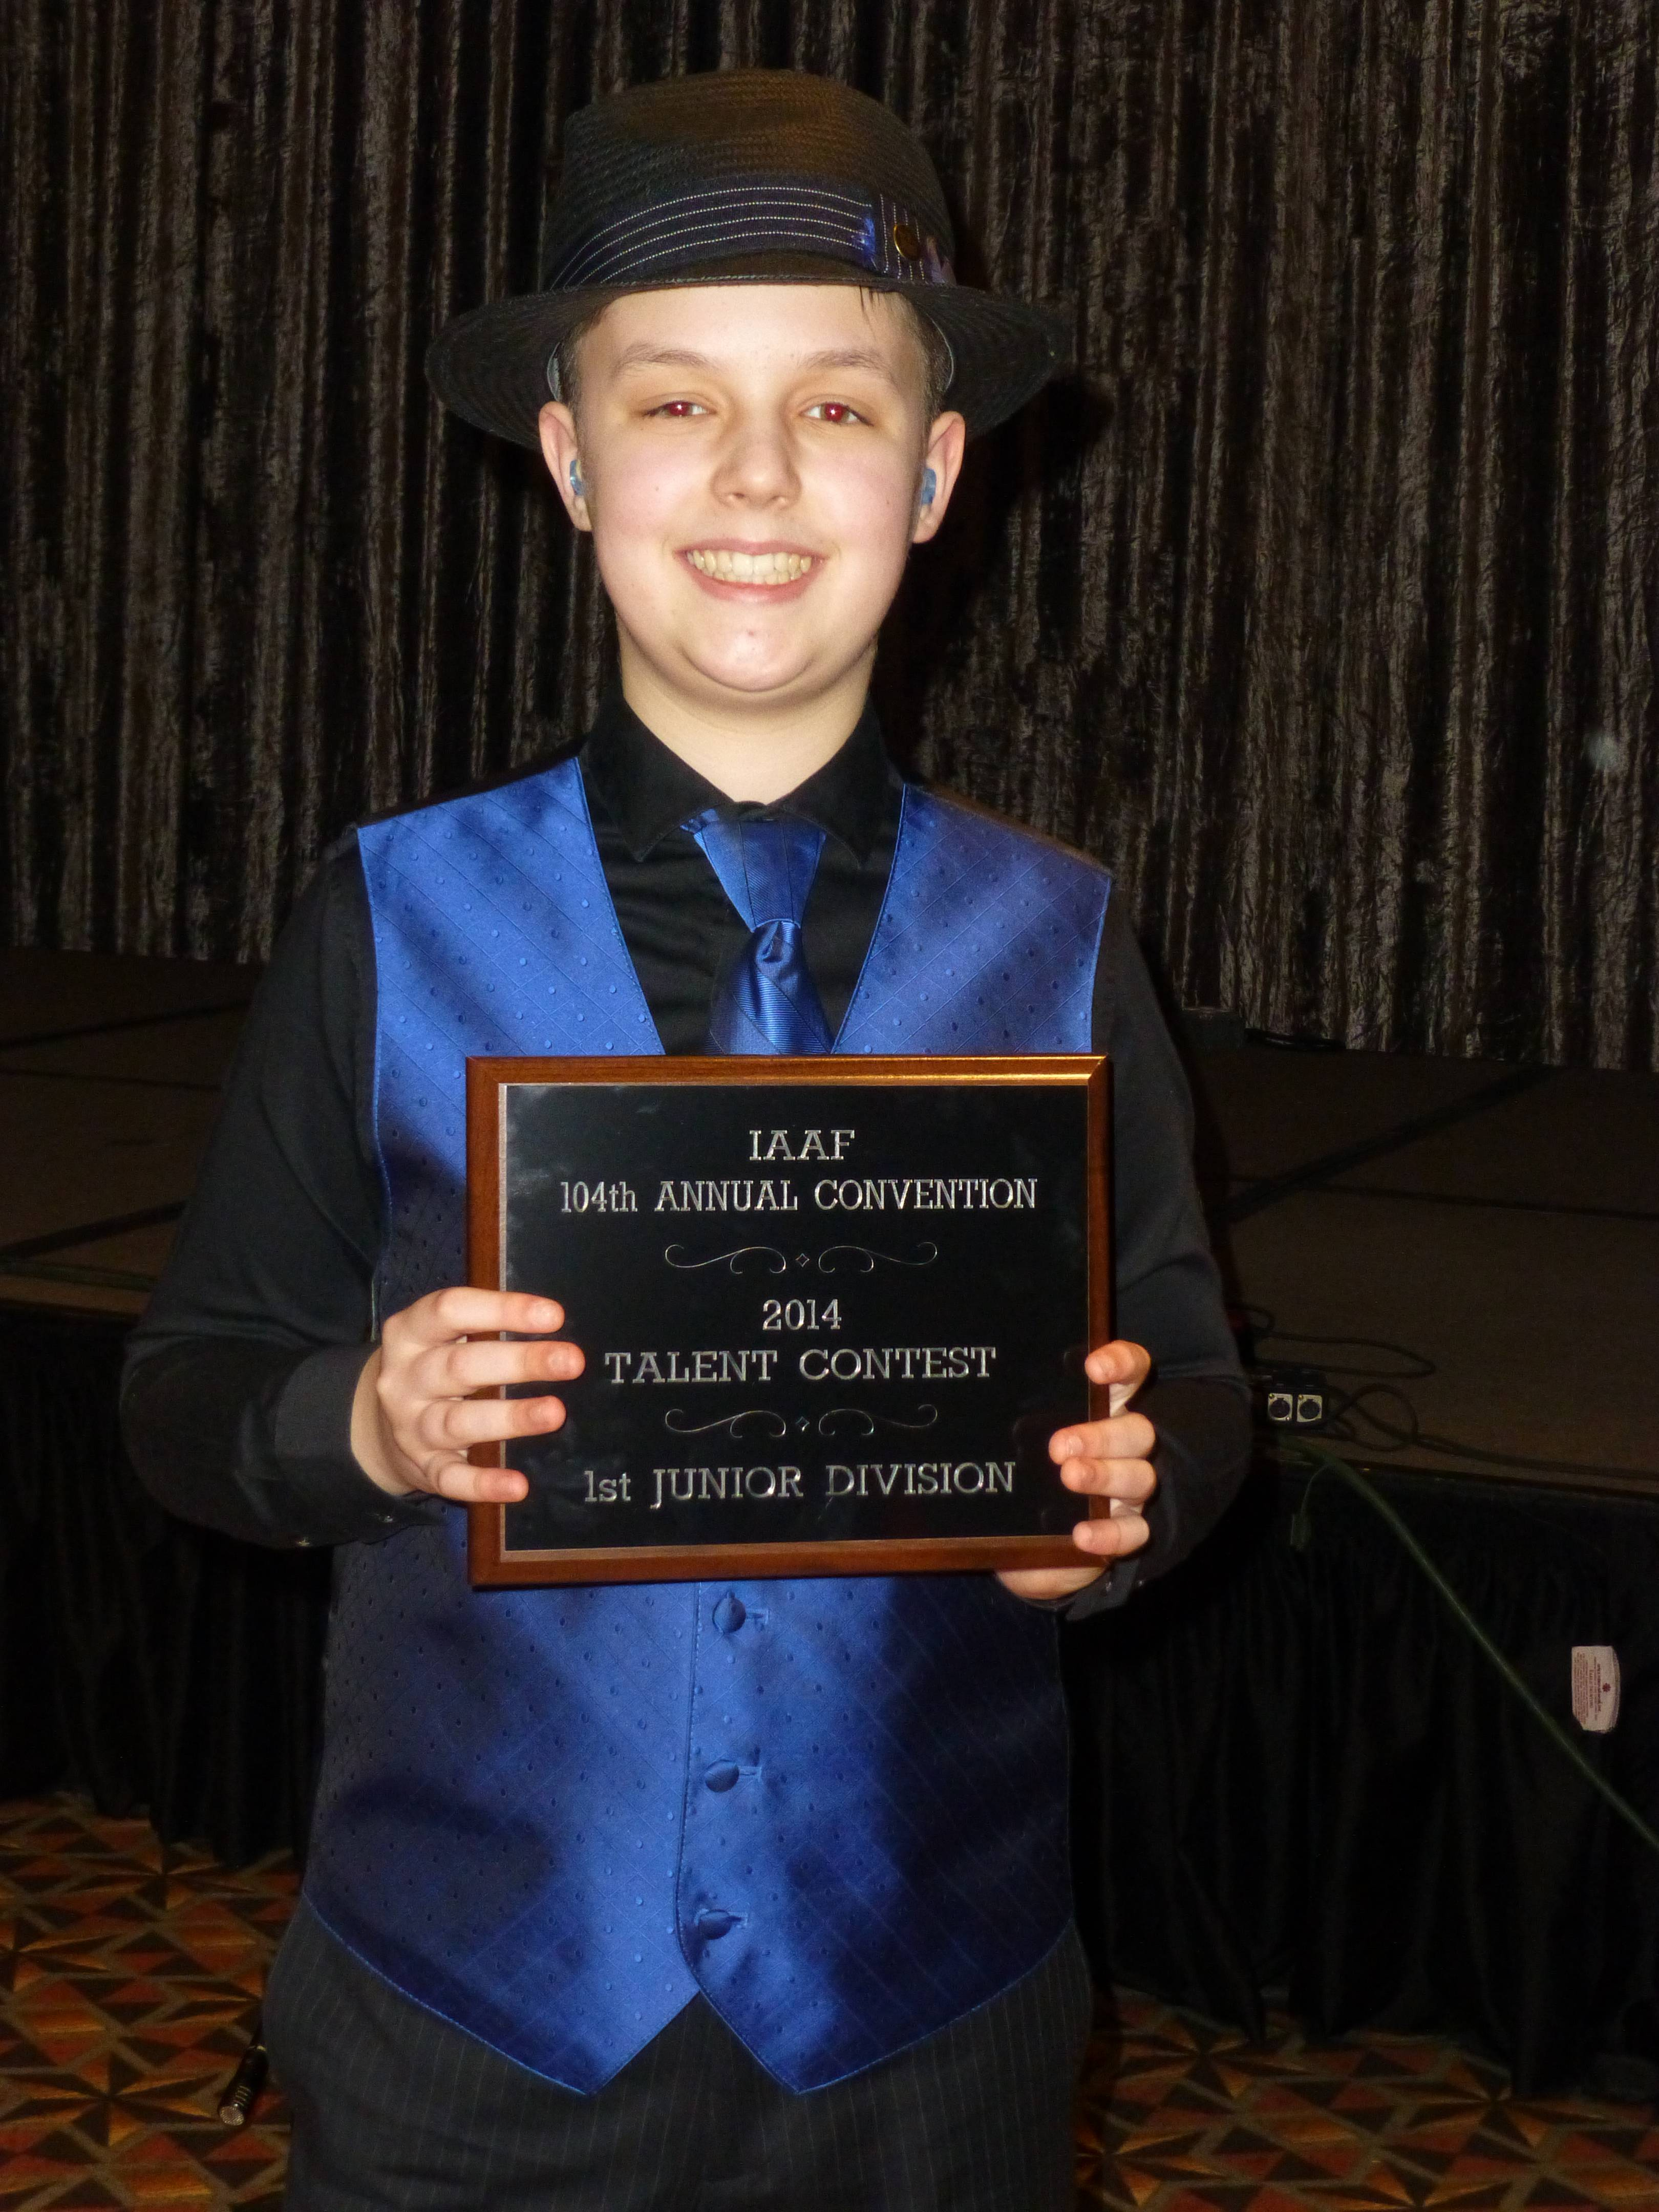 "Daniel Souvigny of Hampshire wins first place junior division talent contest in Springfield with his piano solo ""ragtime"" performance of Nagasaki."